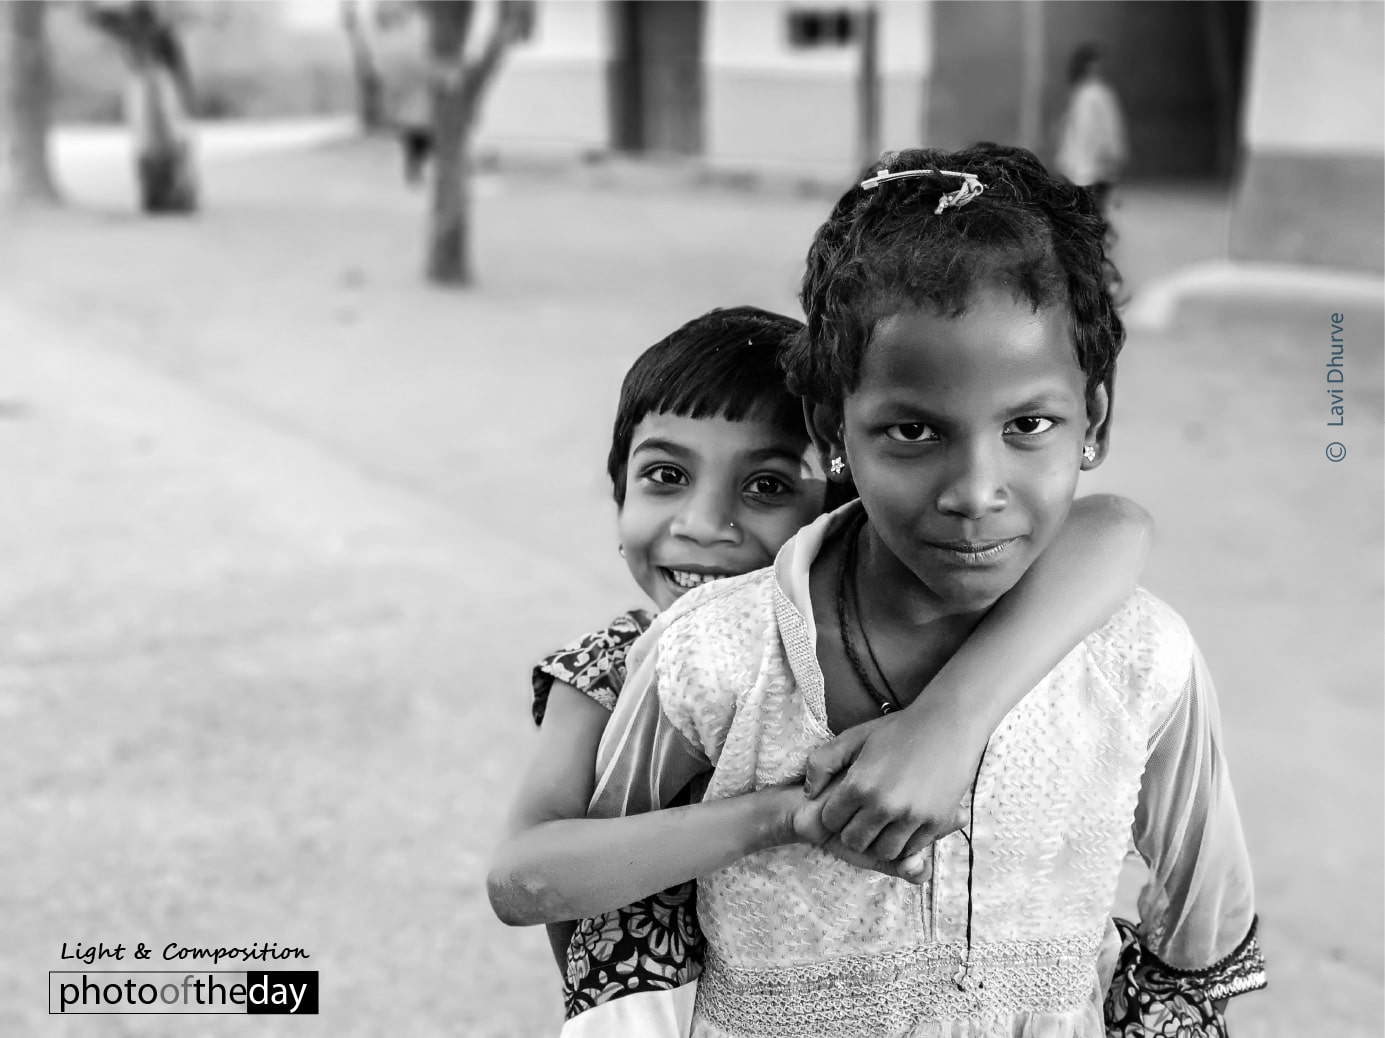 Little Village Girls, by Lavi Dhurve